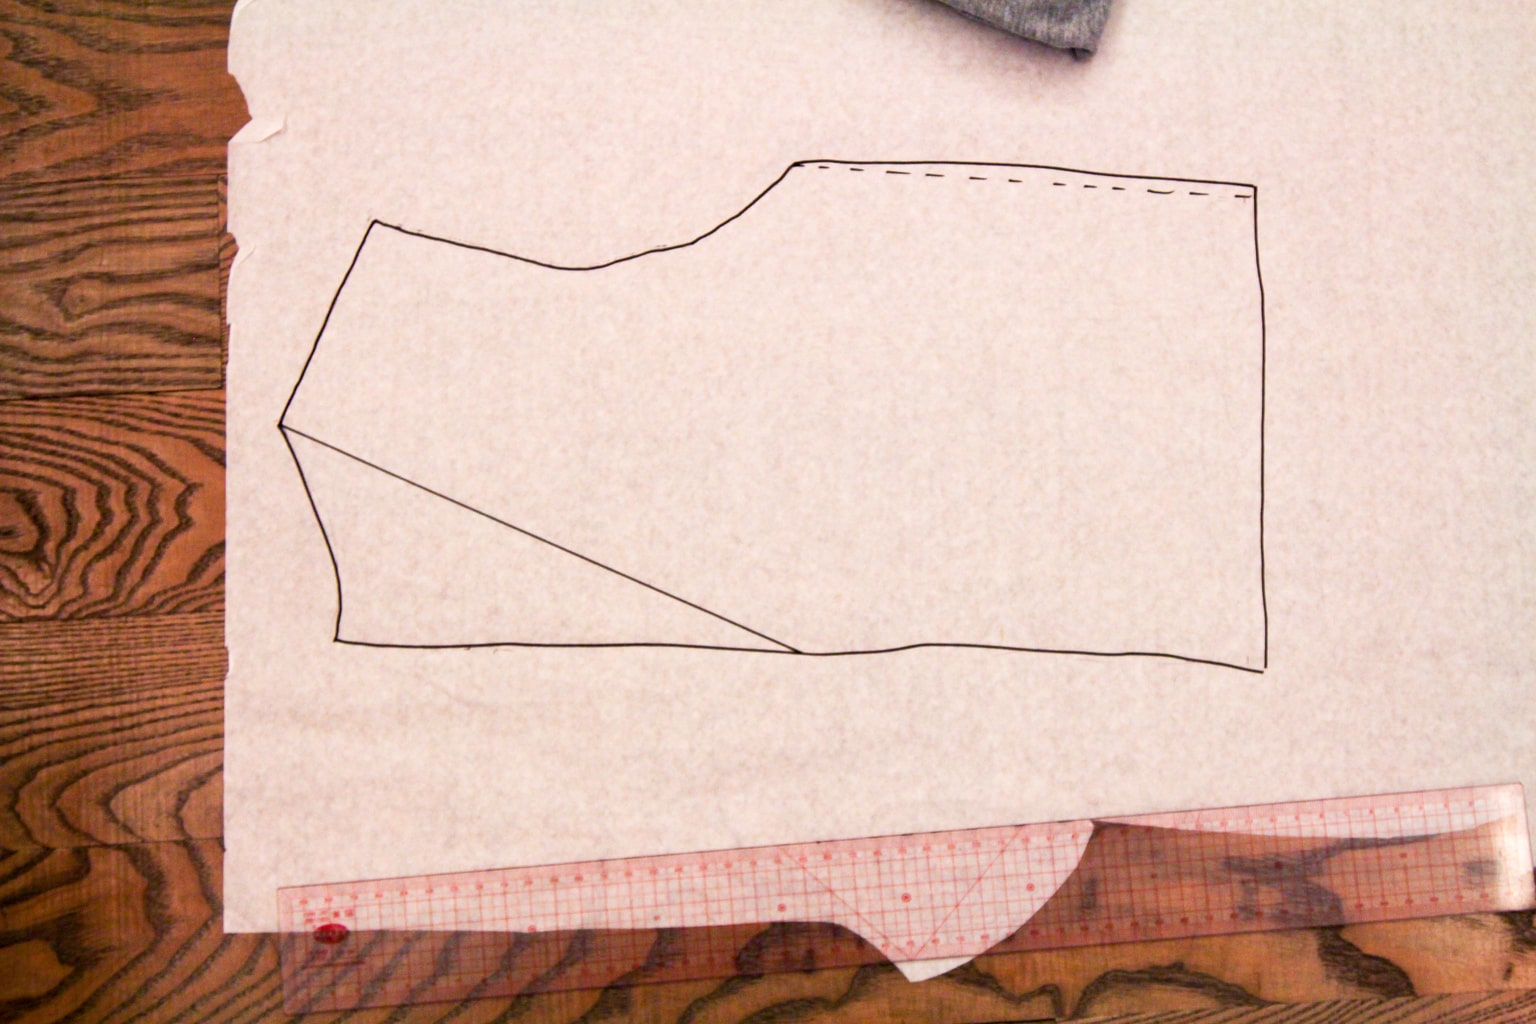 Learn how to draft your own dress pattern with this easy tutorial.